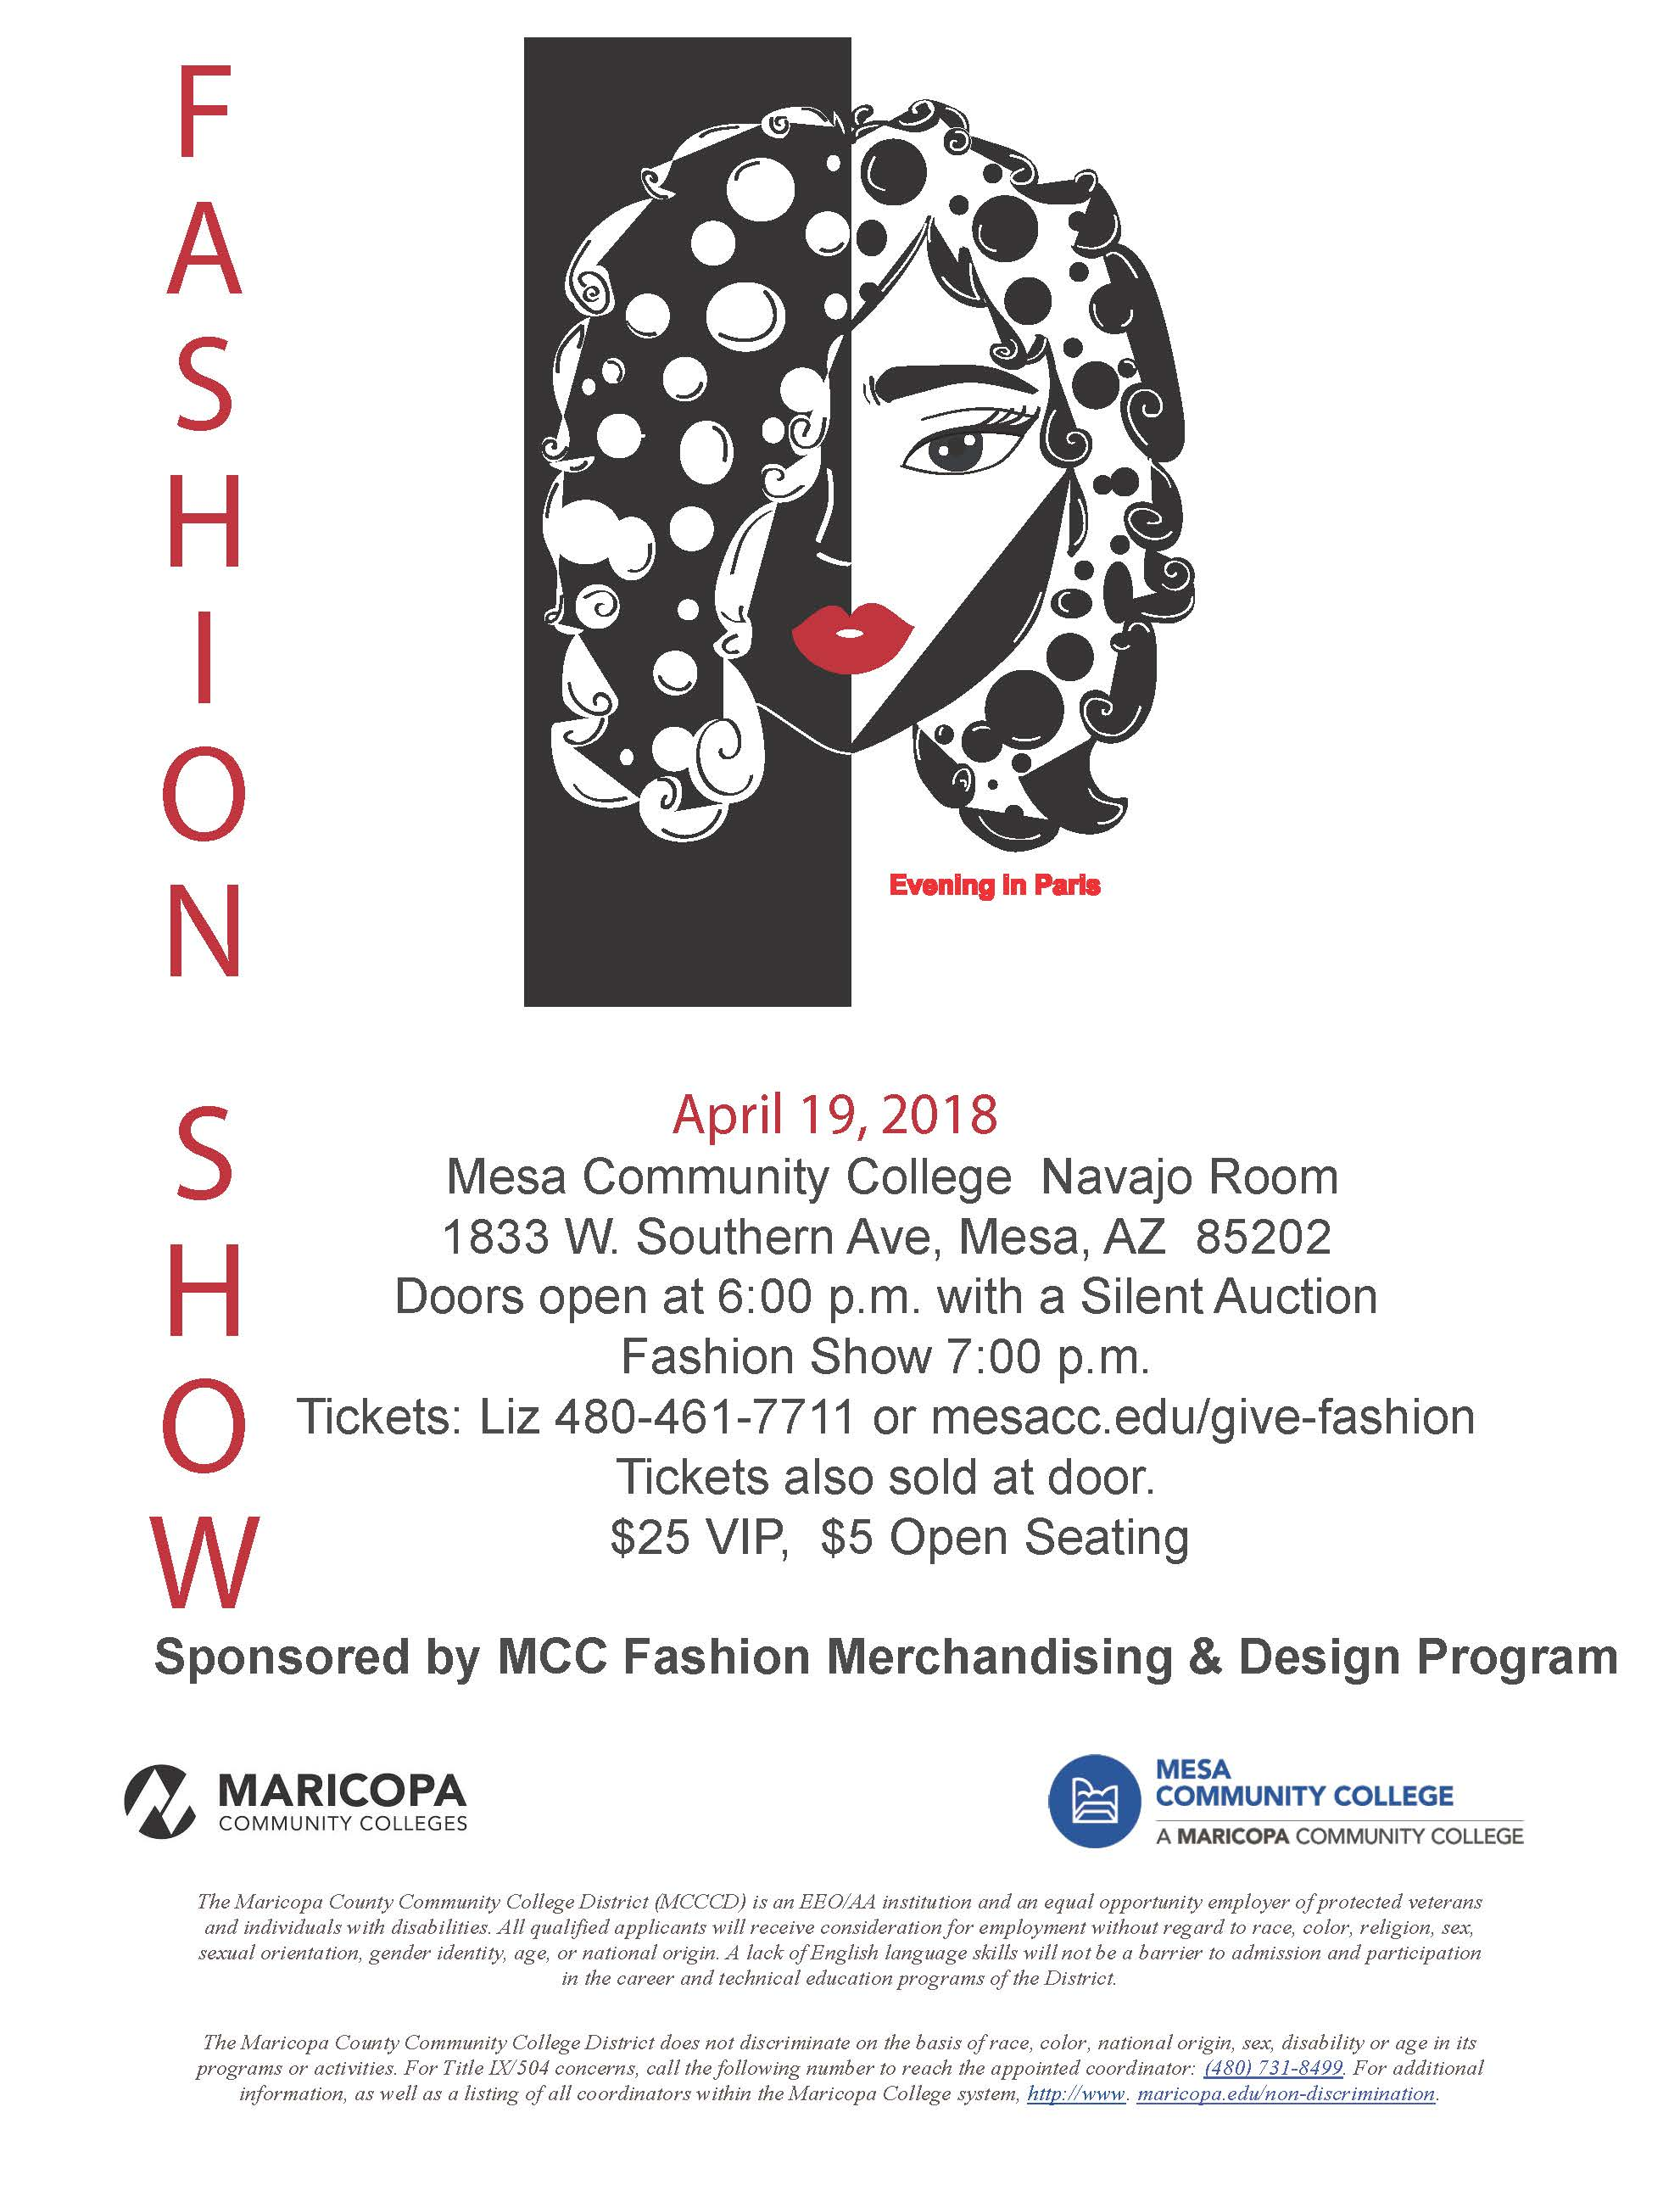 Lack Of College Disability Information >> Mcc Hosts 13th Annual Fashion Show Evening In Paris Press